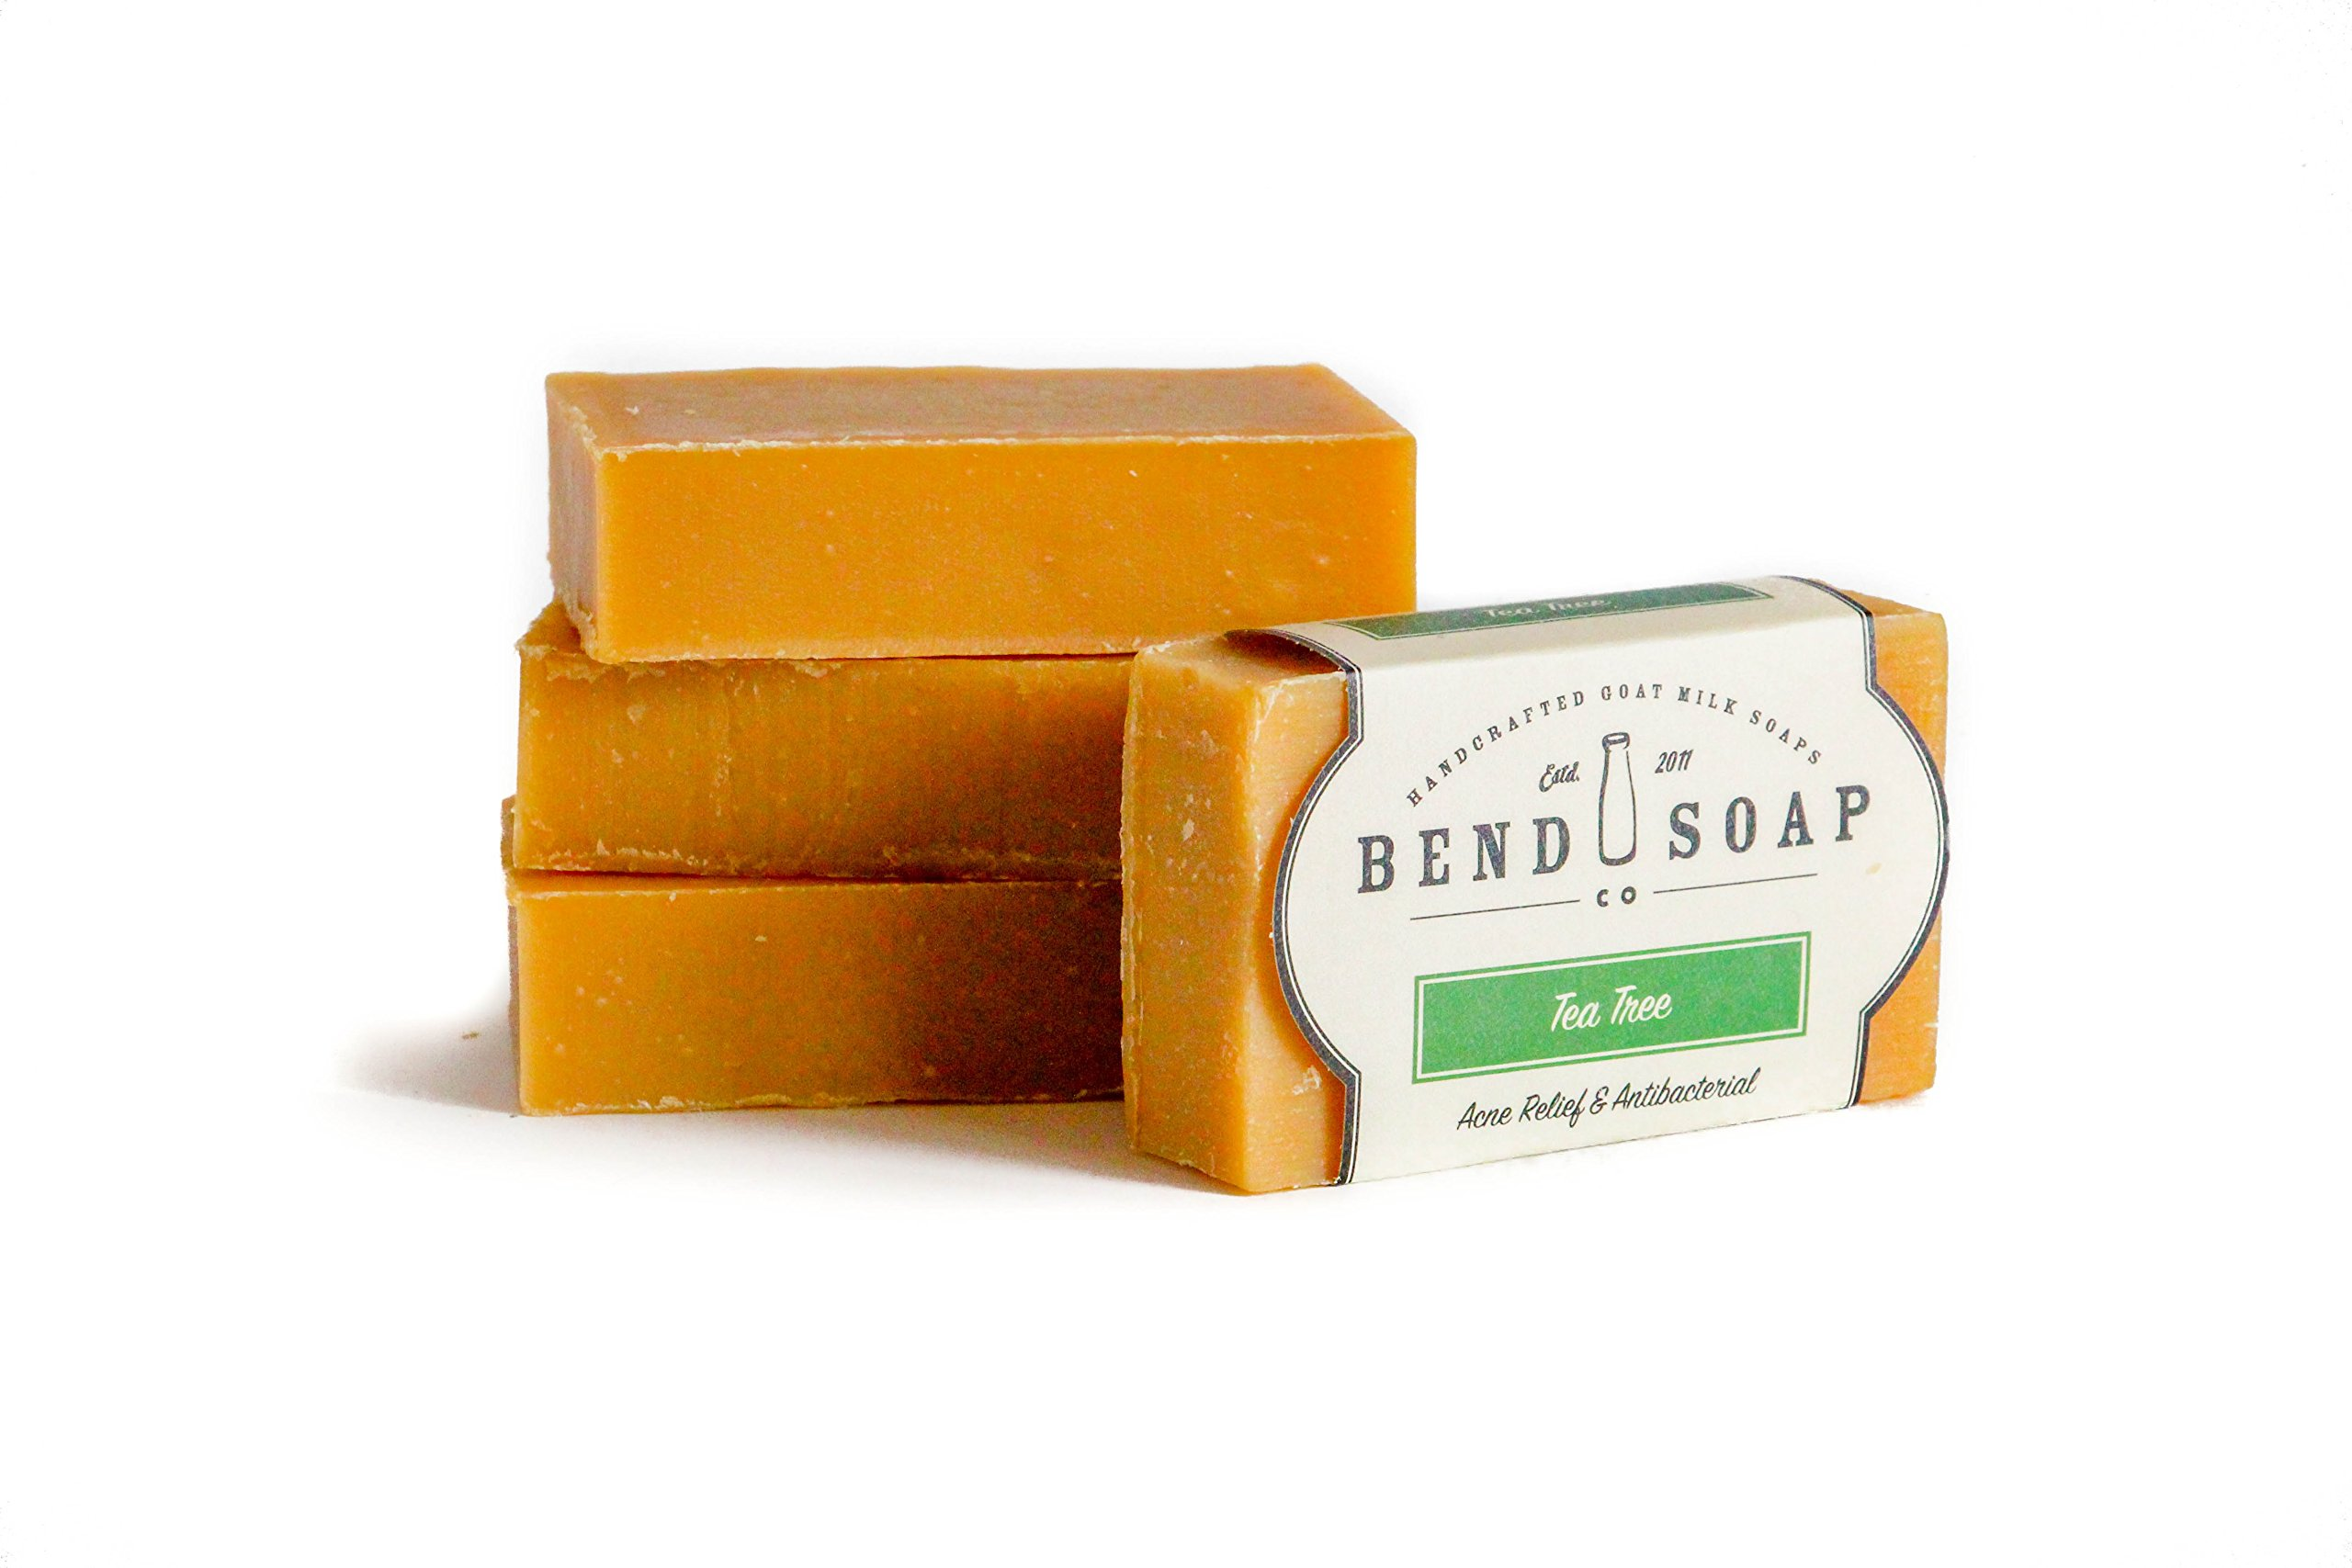 11 Handmade Soap Companies to Check Out on Etsy